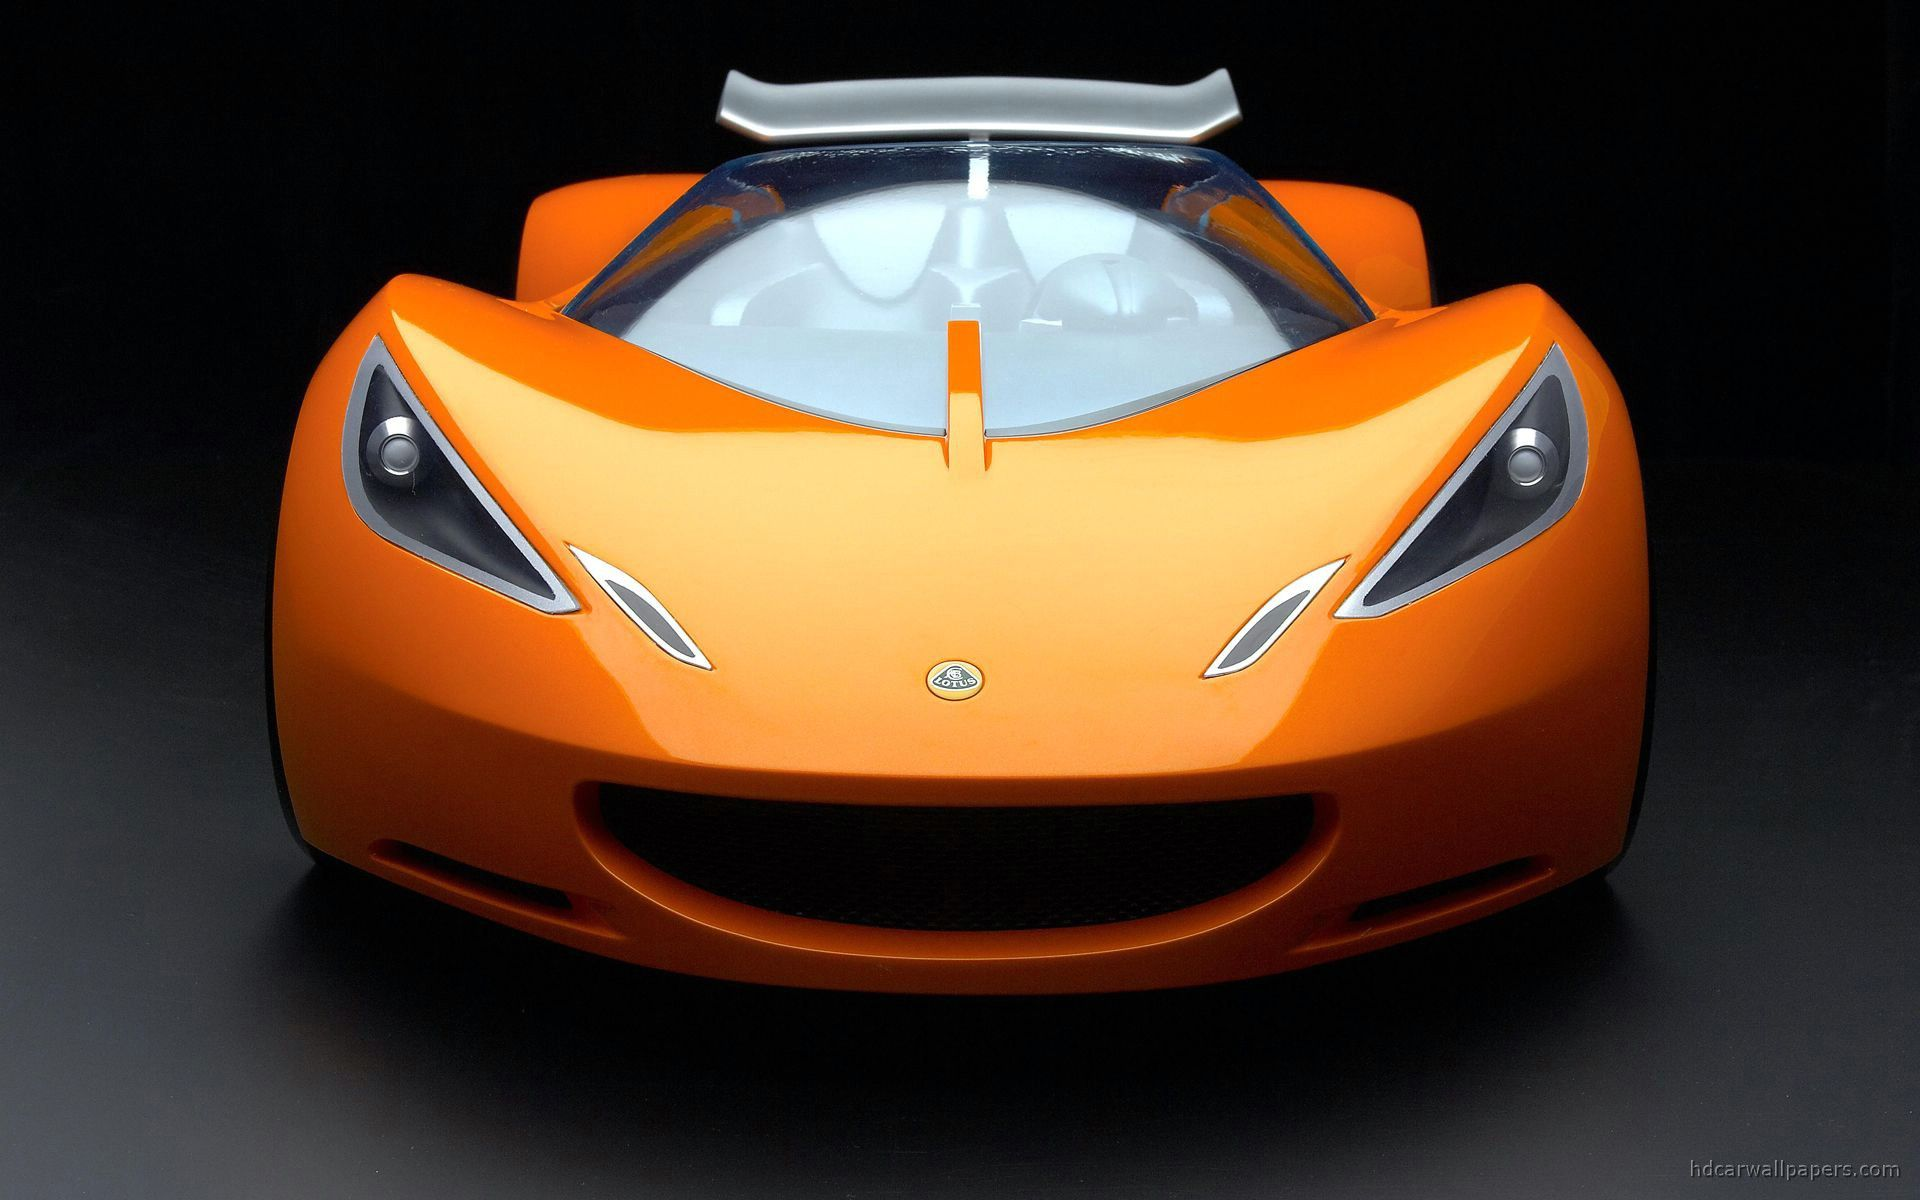 Lotus Hot Wheels Concept 3 Wallpaper Hd Car Wallpapers Concept